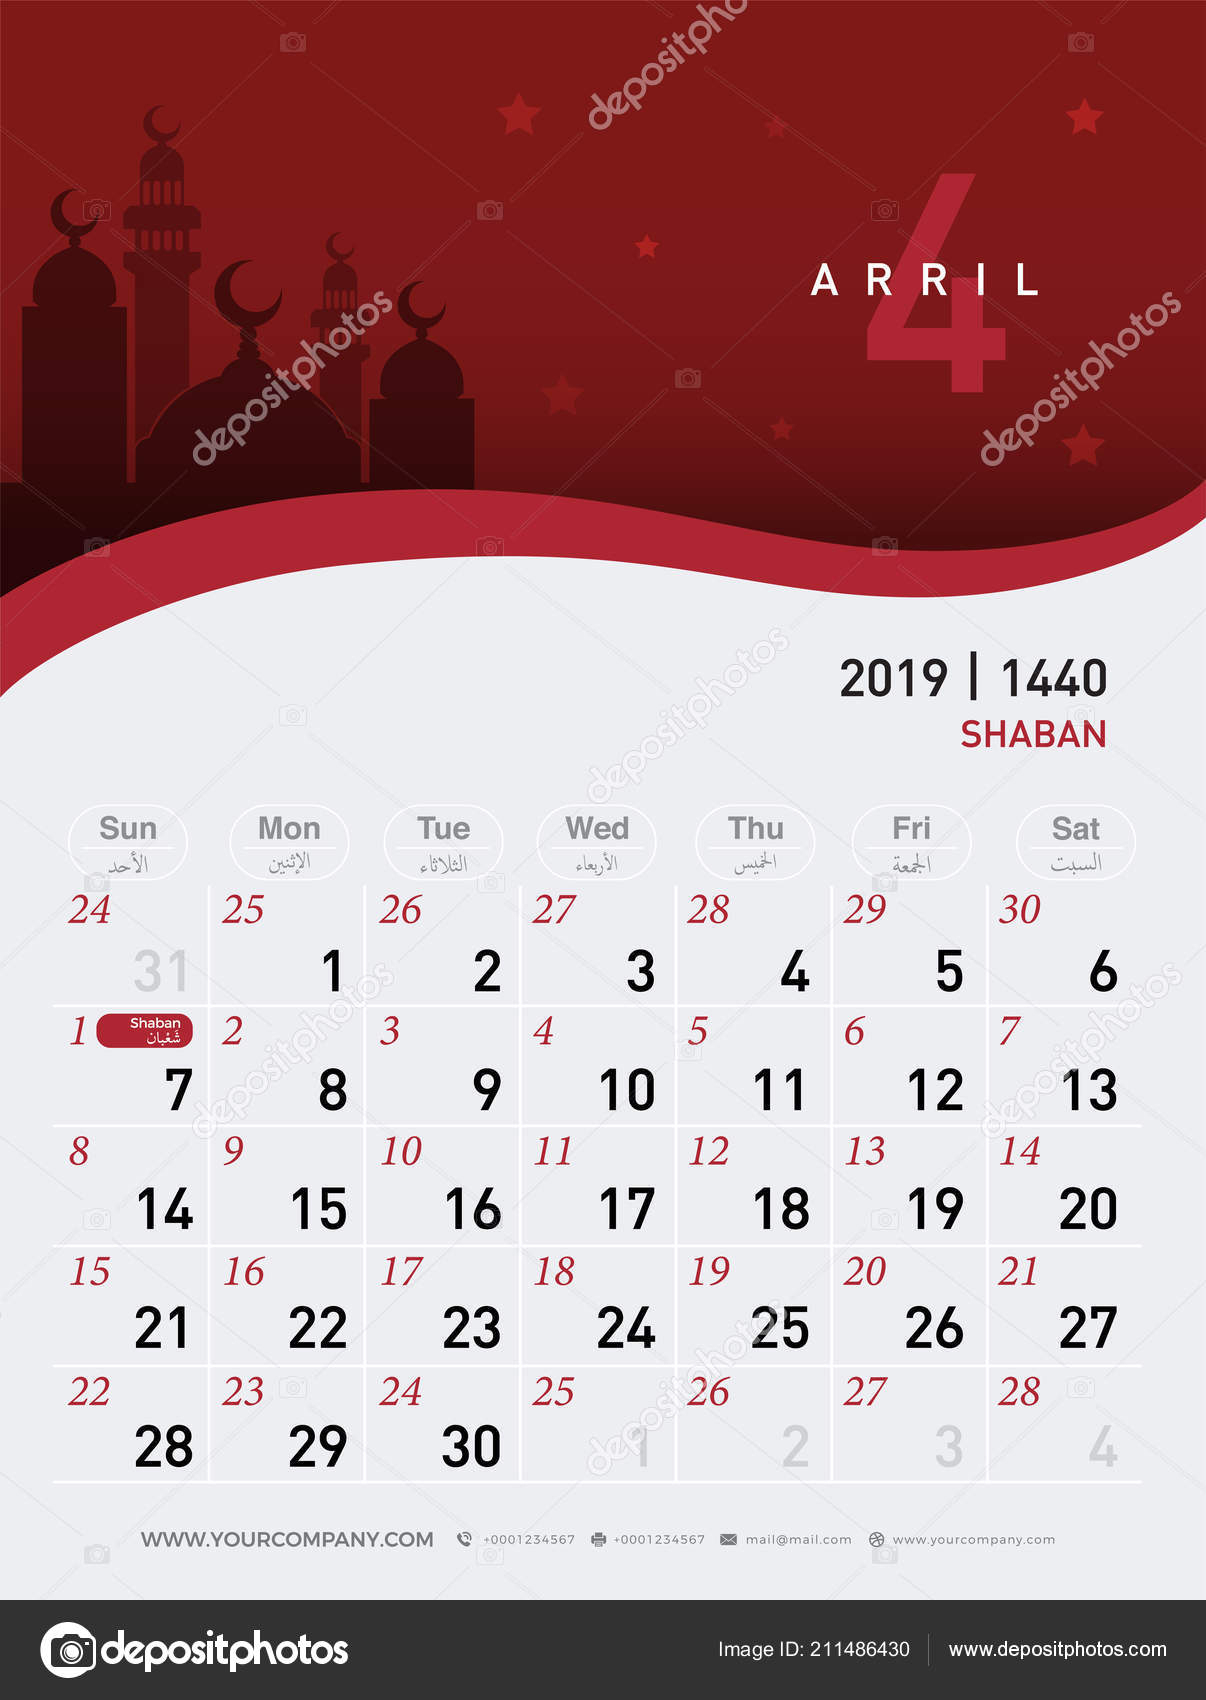 April Calendar 2019 Hijri 1440 1441 Islamic Design Template with 1440 Hijri Calendar